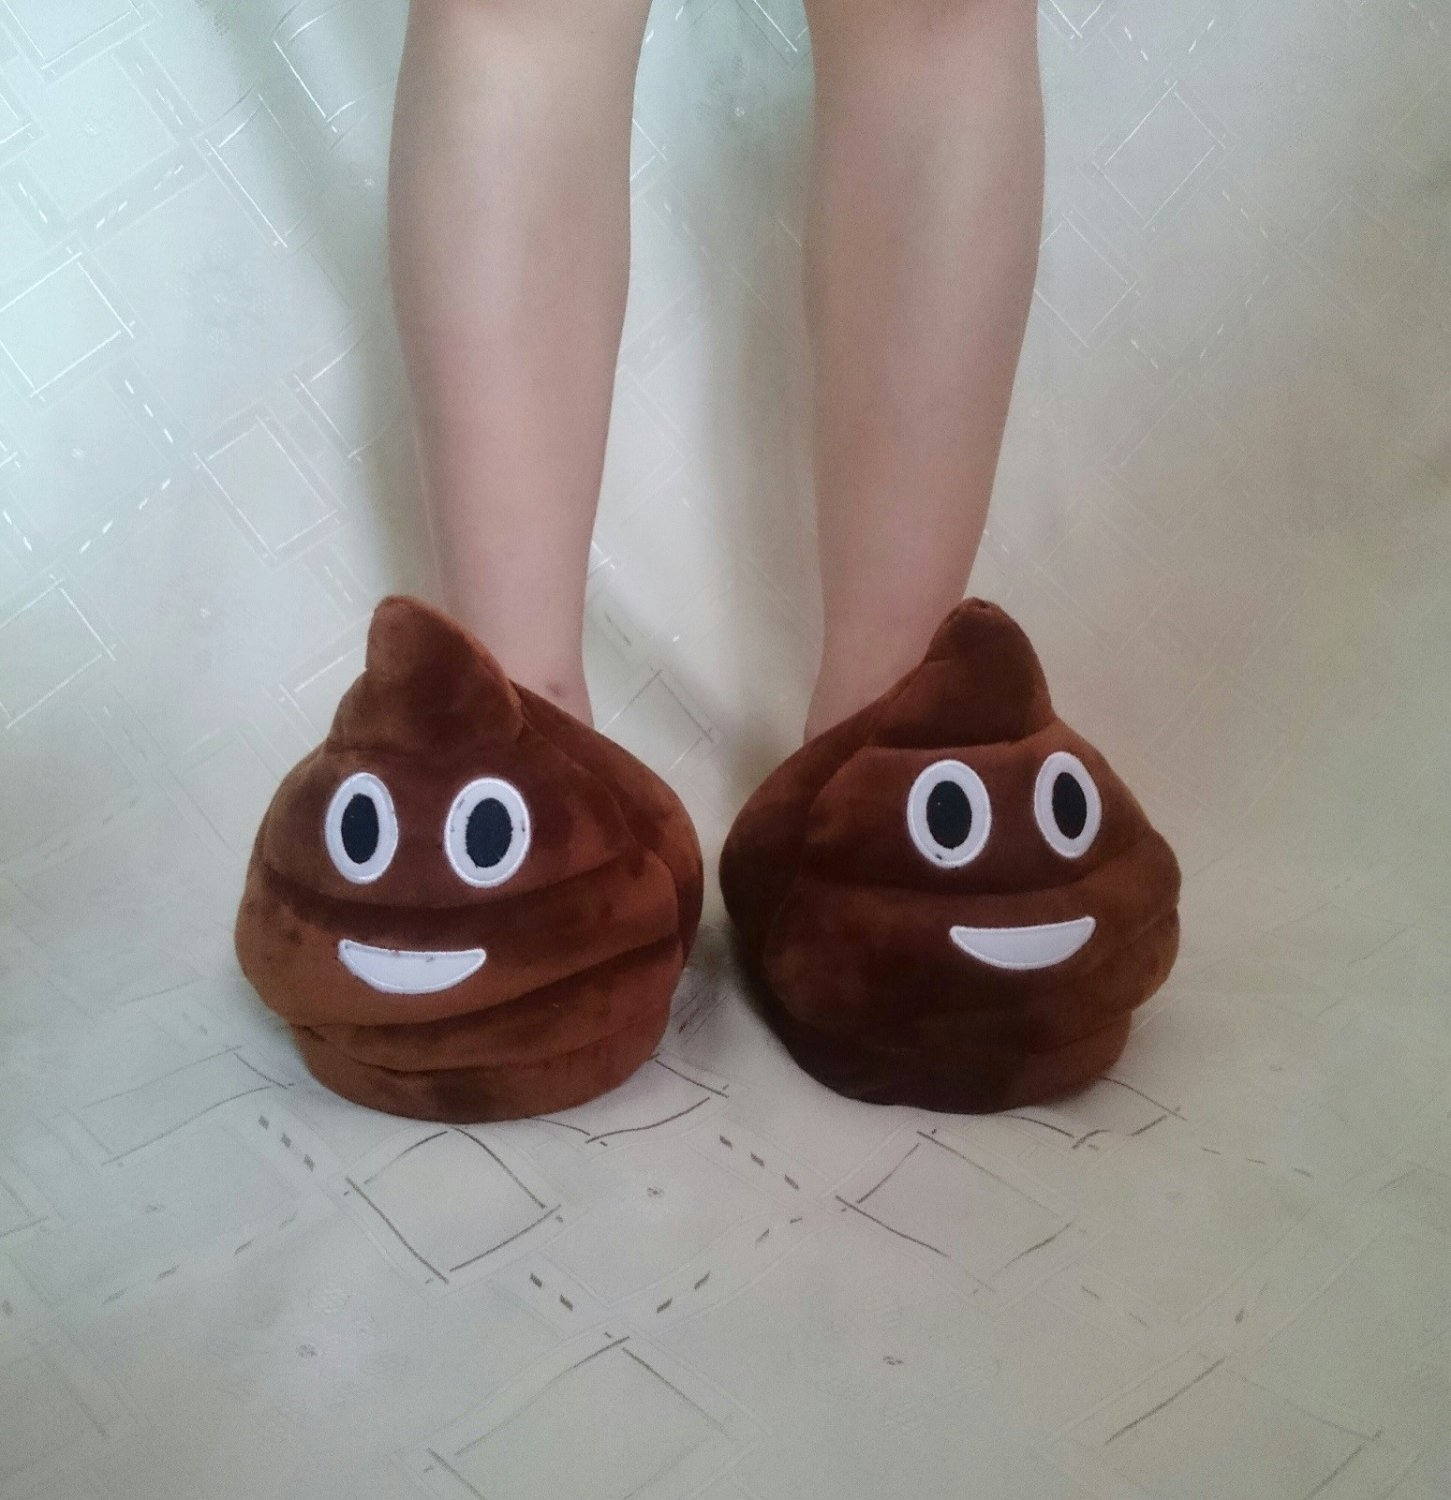 35-41 Funny Shit Shit Poop Emoji Slippers Home Accs FamilyWear Creative Gifts Women's Men's Shoes